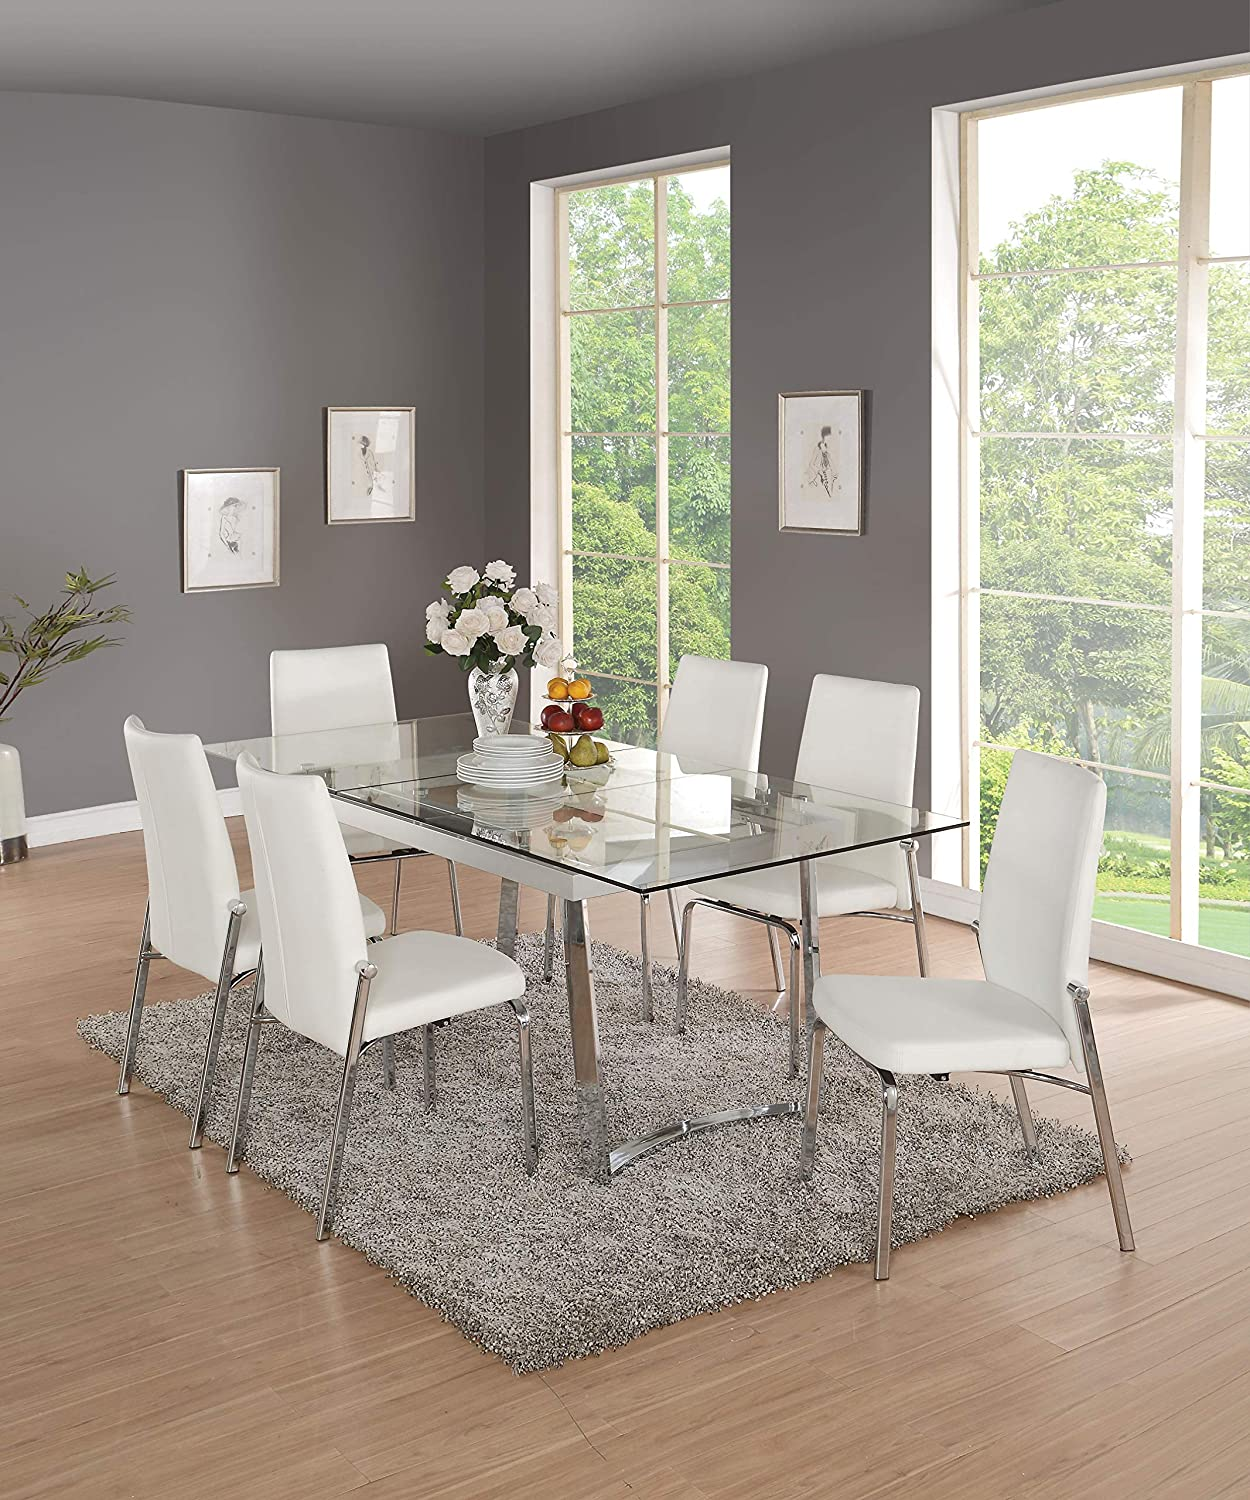 Amazon.com - Acme Furniture Osias Glass Dining Table, Chrome ...